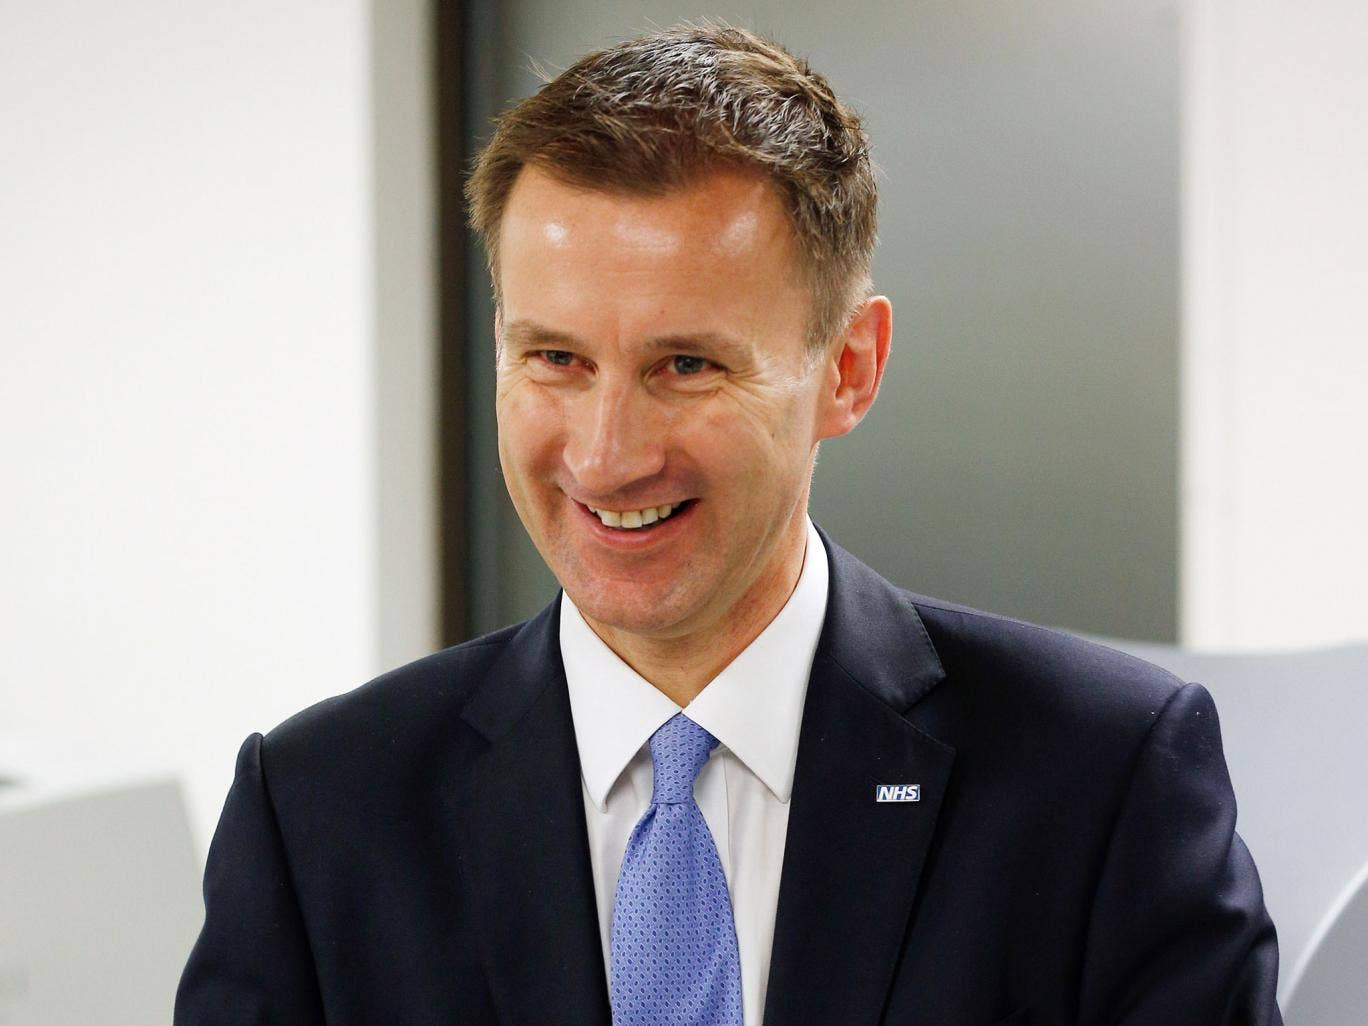 Jeremy Hunt called for flexible hours for people caring for elderly parents